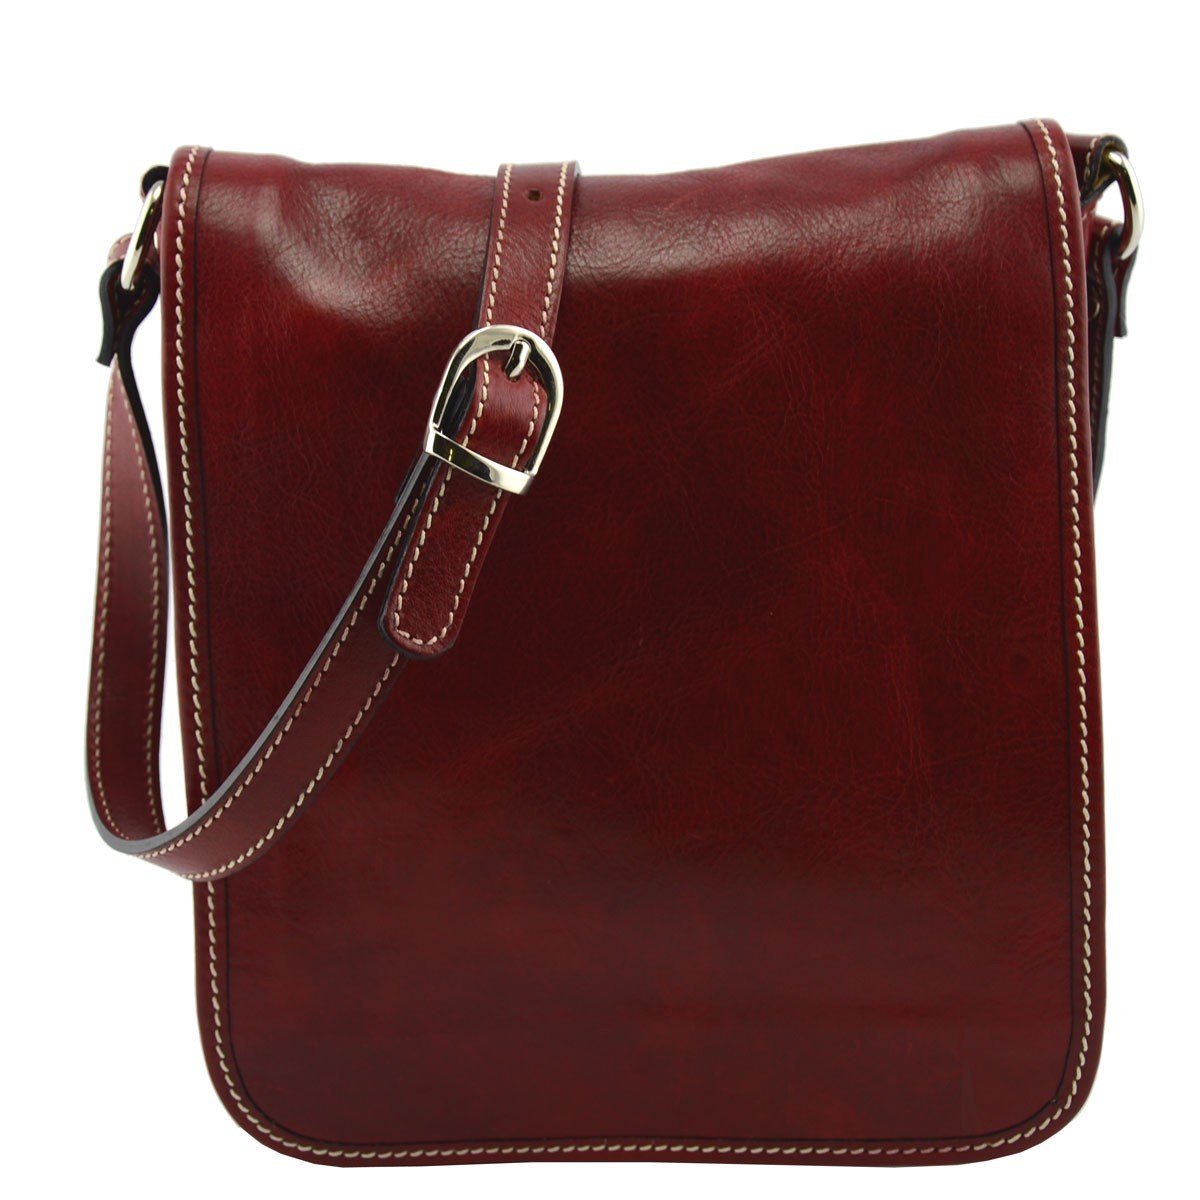 Dream Leather Bags Made in Italy Genuine Leather メンズ US サイズ: 1 カラー: レッド B071G18PZ3